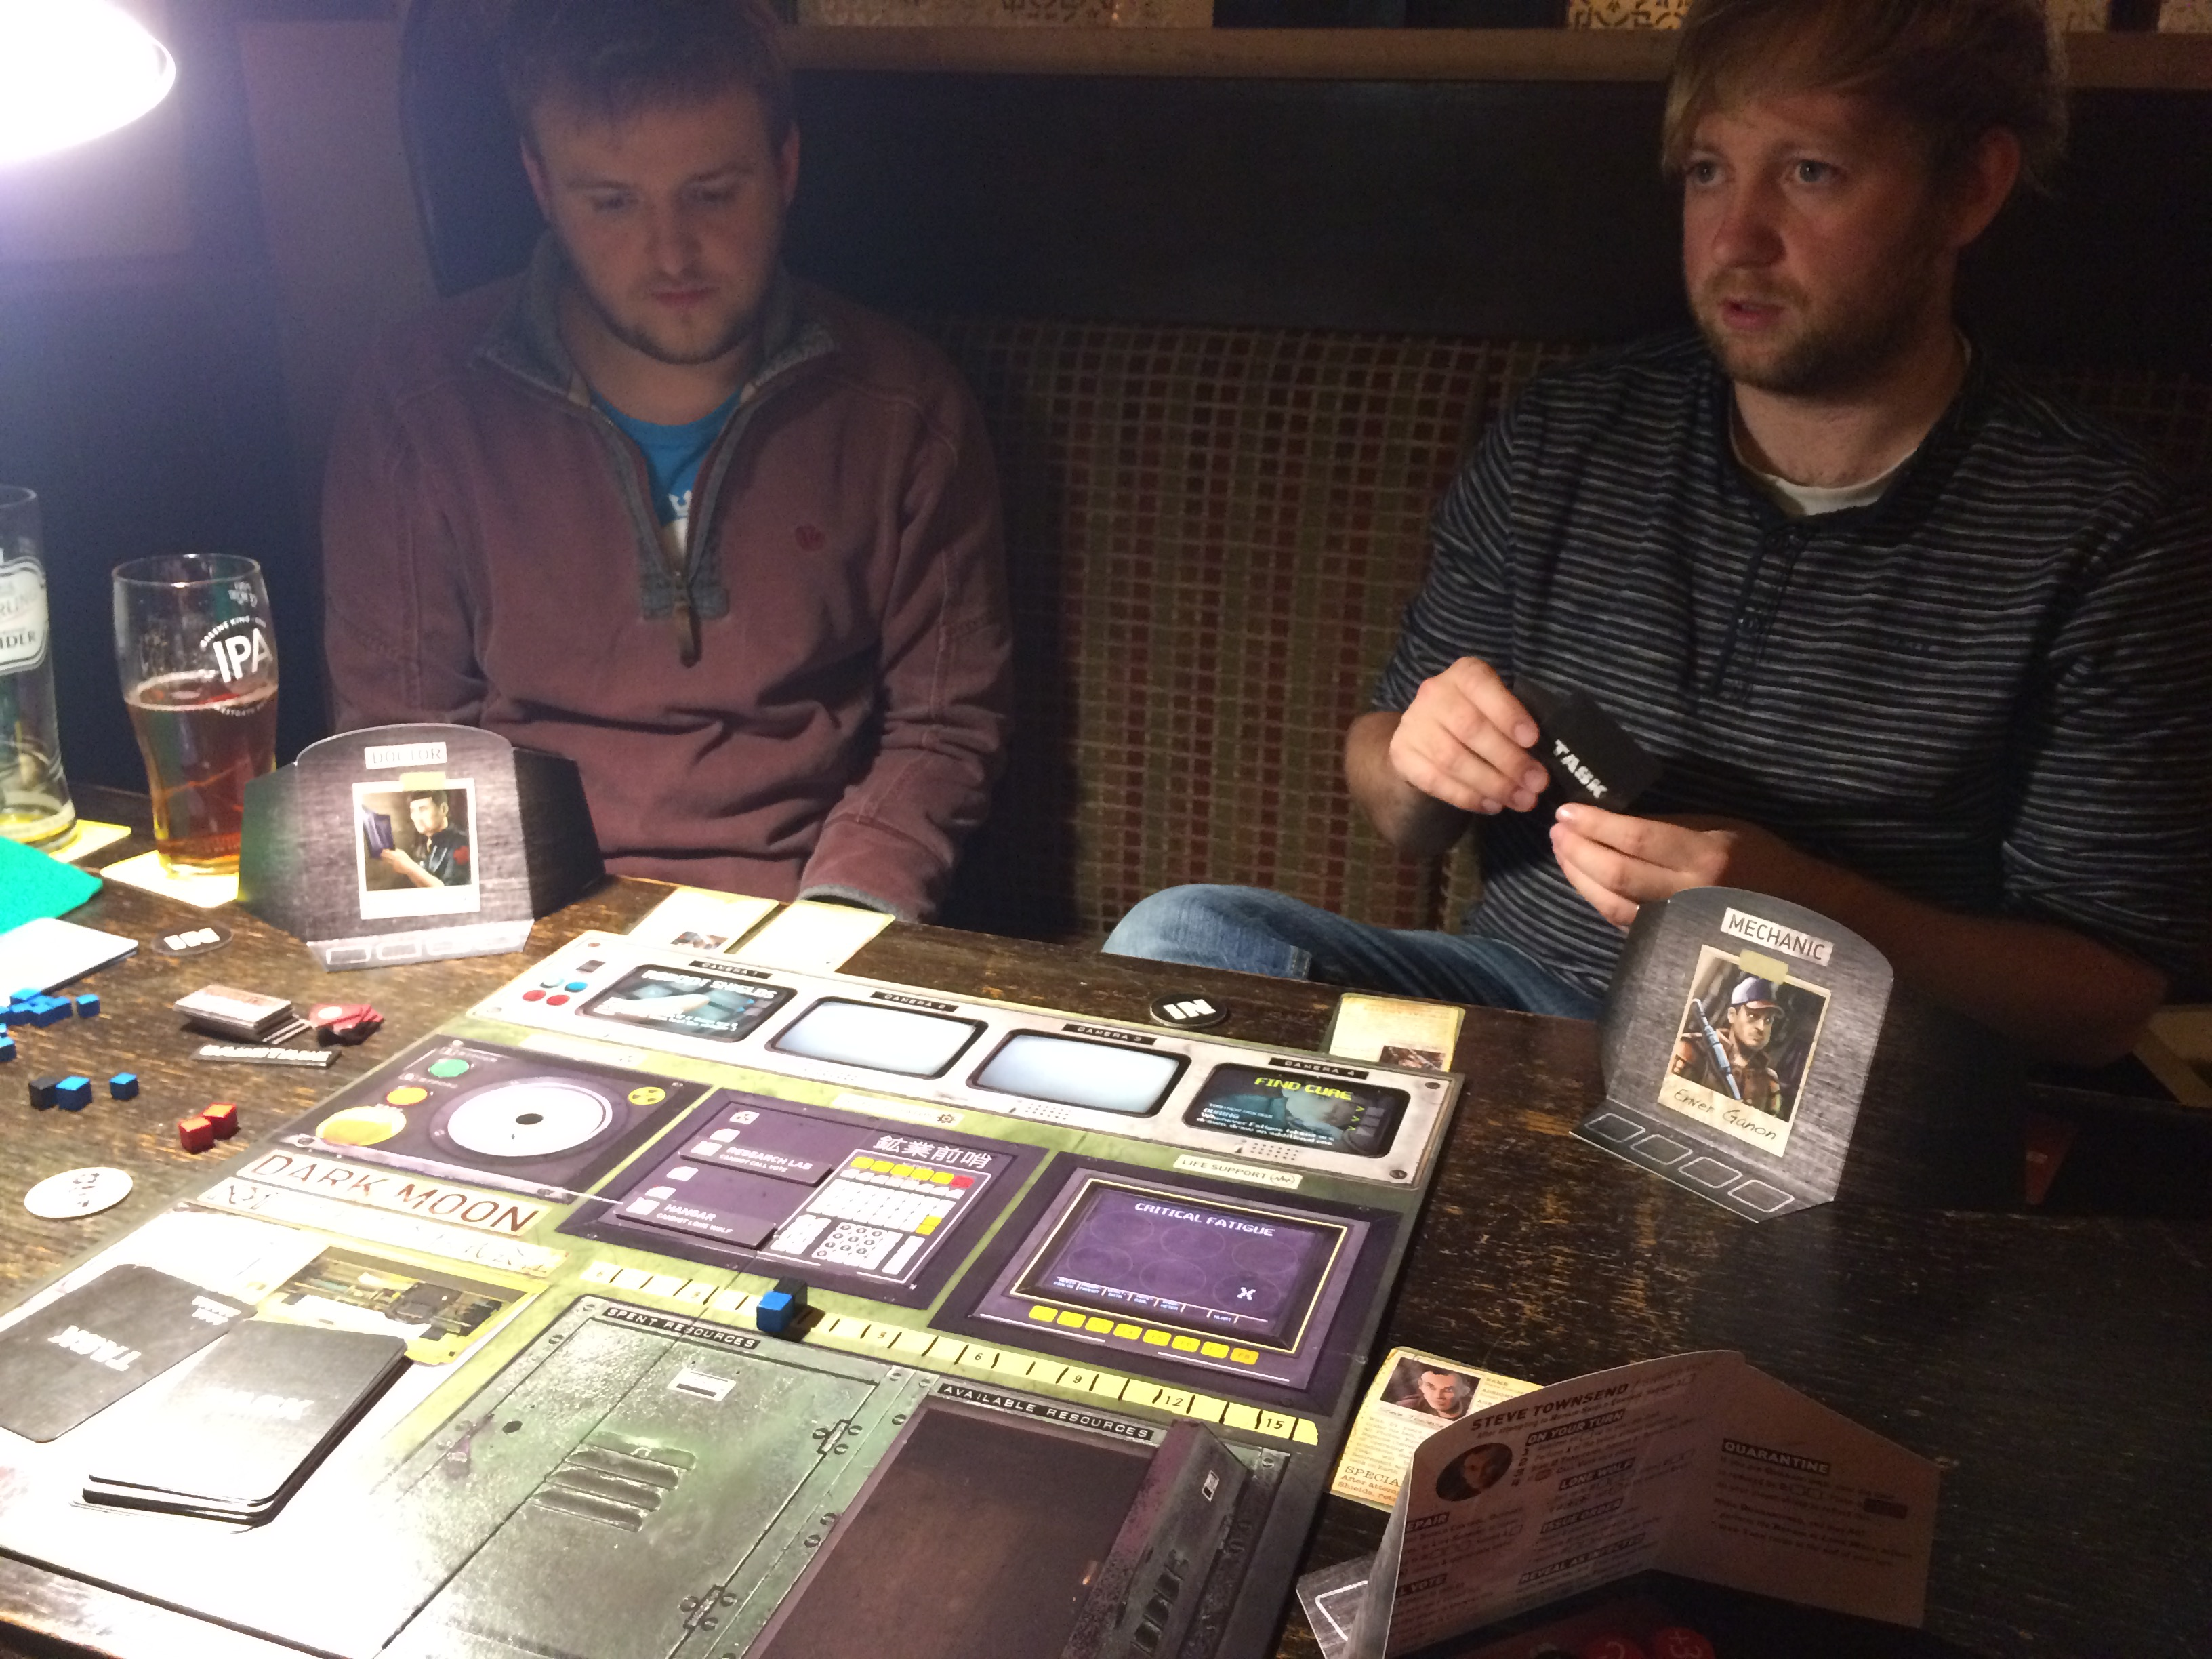 We are playing Dark moon or Battlestar Galactica Express